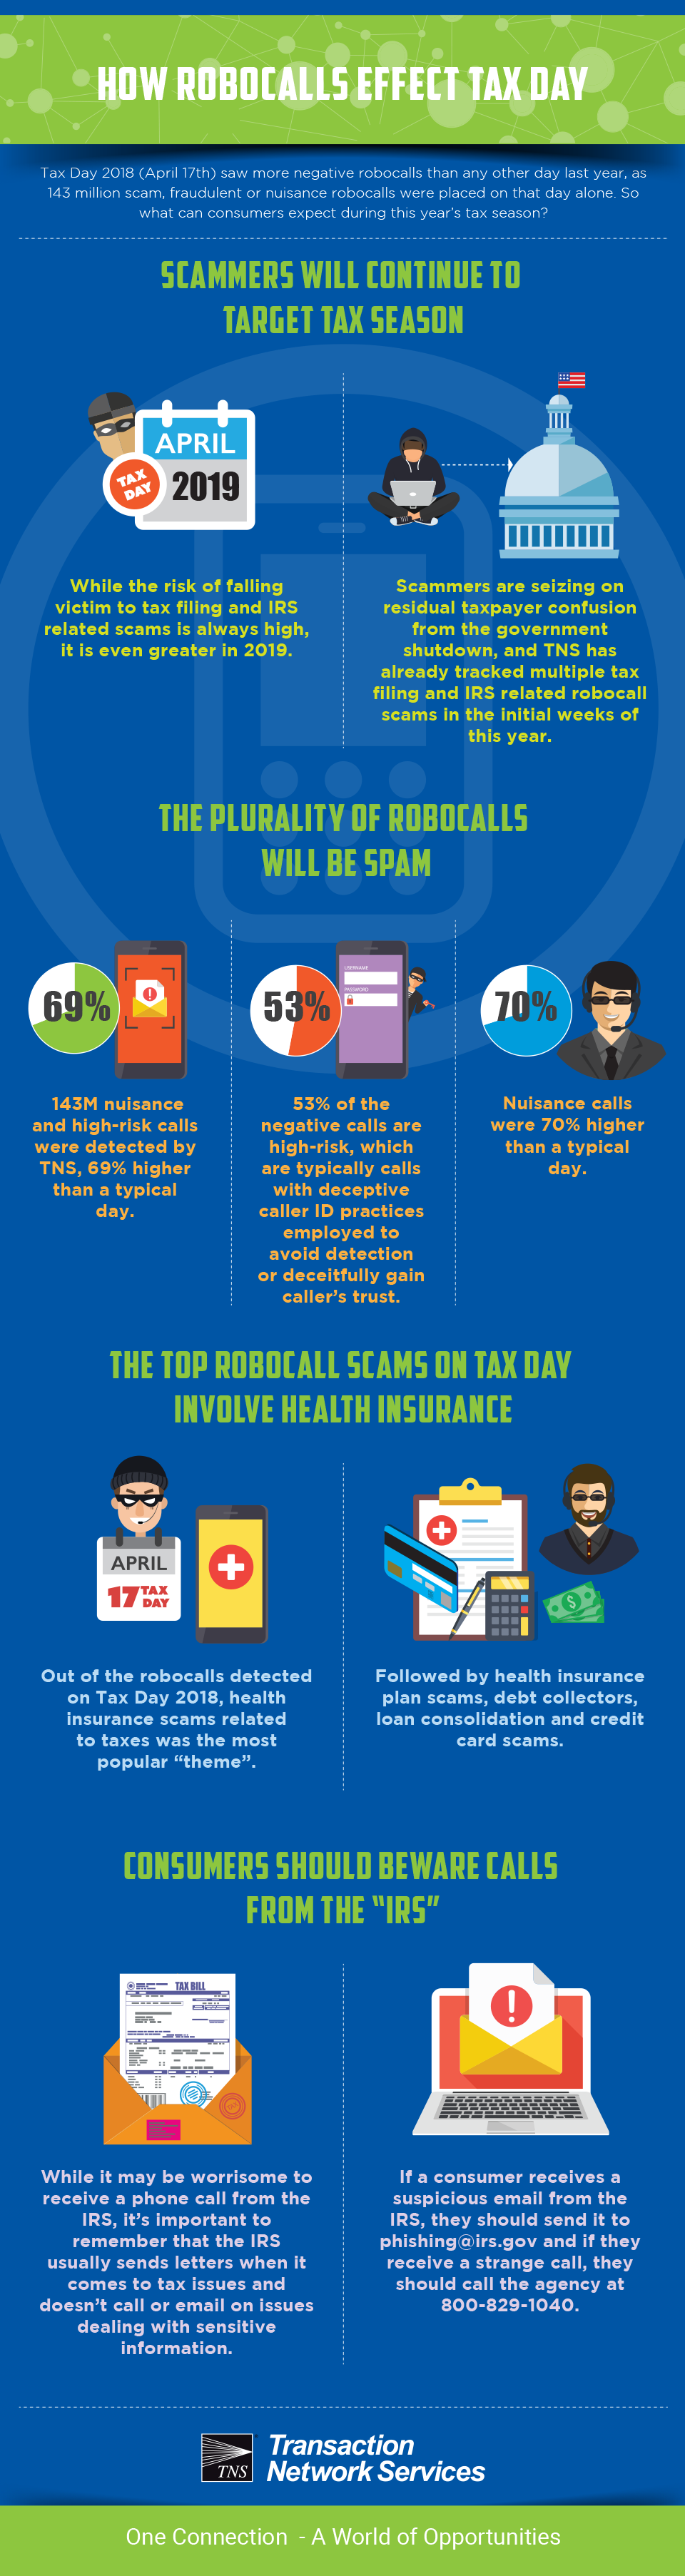 How Robocalls Effect Tax Day